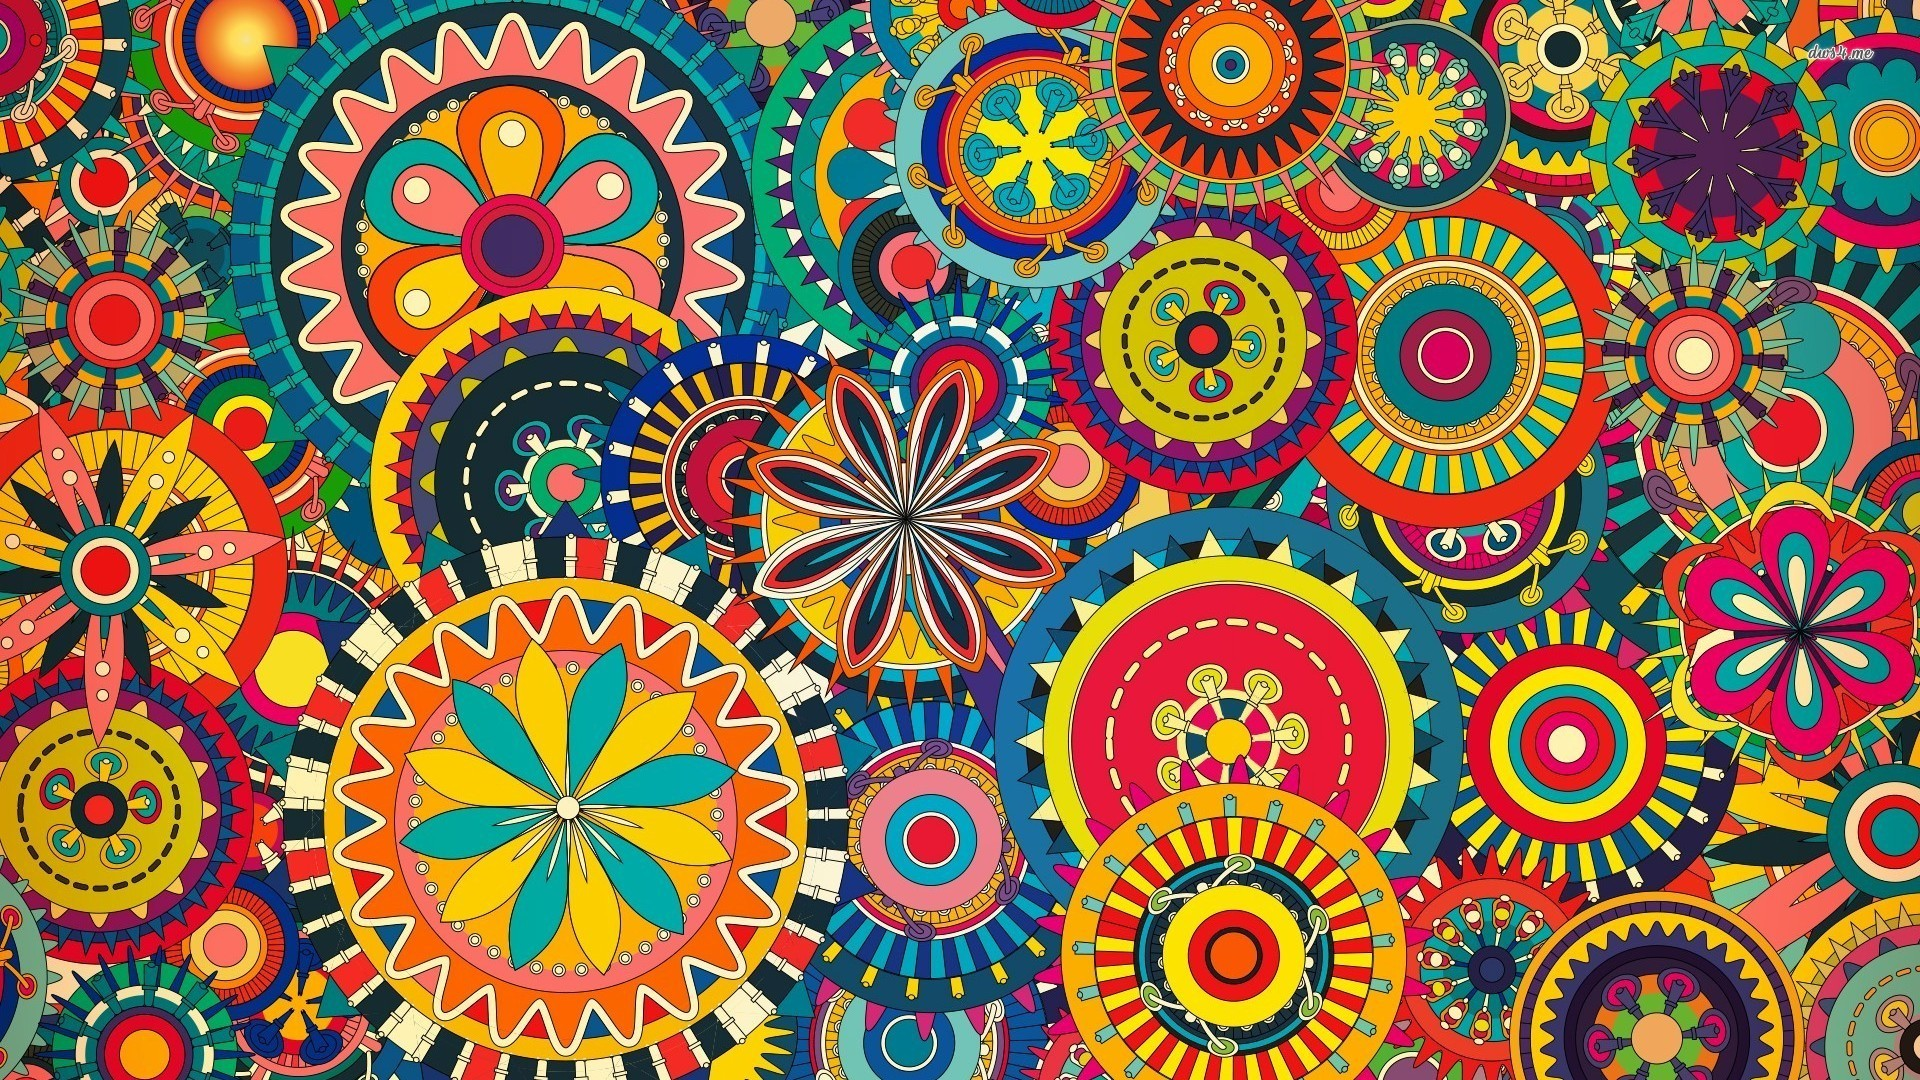 Colorful Aztec Mobile Wallpaper High Resolution Wallpaper px  957.08 KB